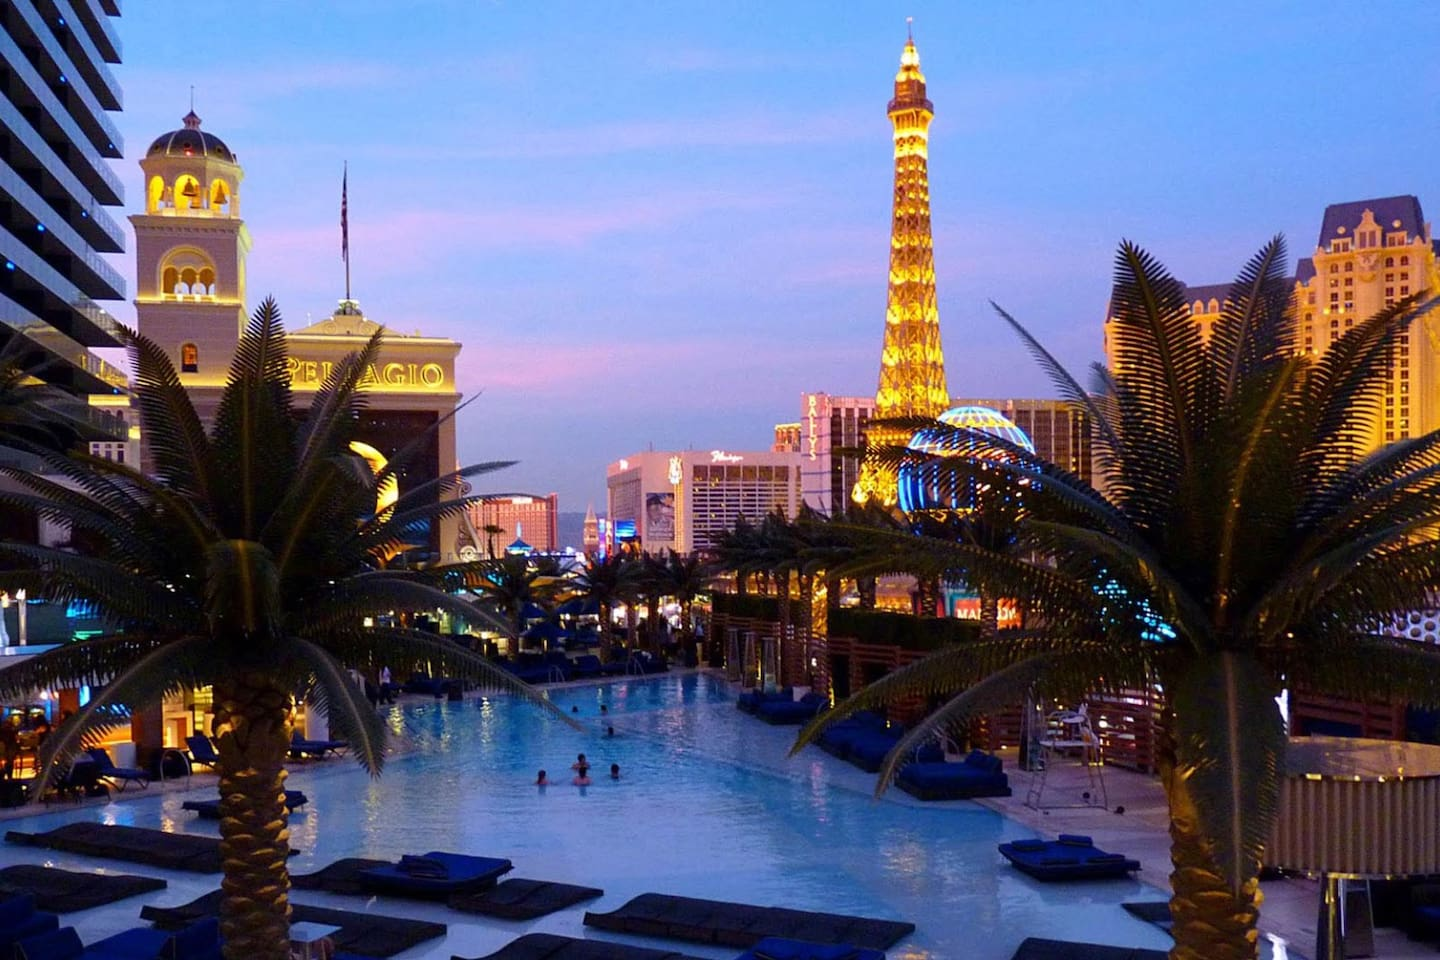 A view from the Cosmopolitan Bamboo pool (free use with the room key) looking directly overtop of the Jockey club at the belagio on the left,  Paris and Planet Hollywood on the right